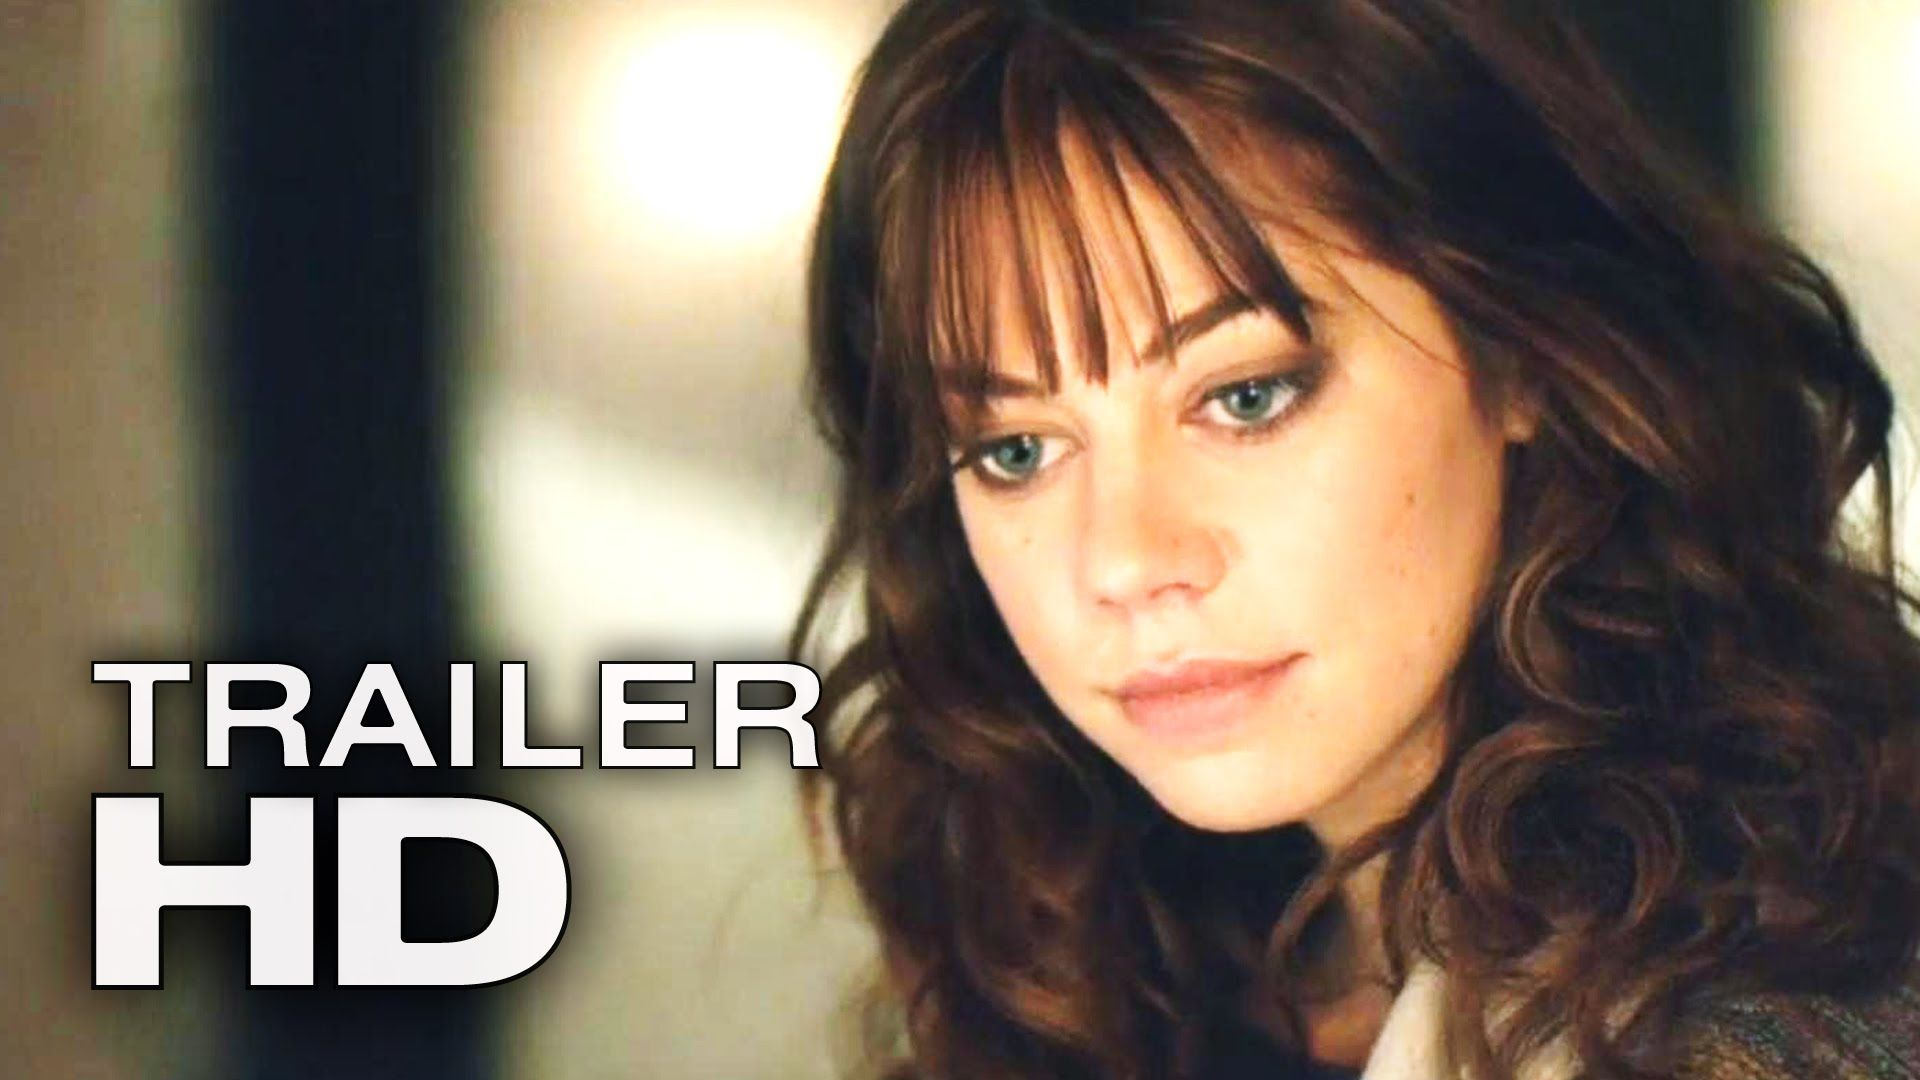 Two Night Stand Trailer 2014 Miles Teller Analeigh Tipton Movie Official Hd Analeigh Tipton Movies Miles Teller Youtube